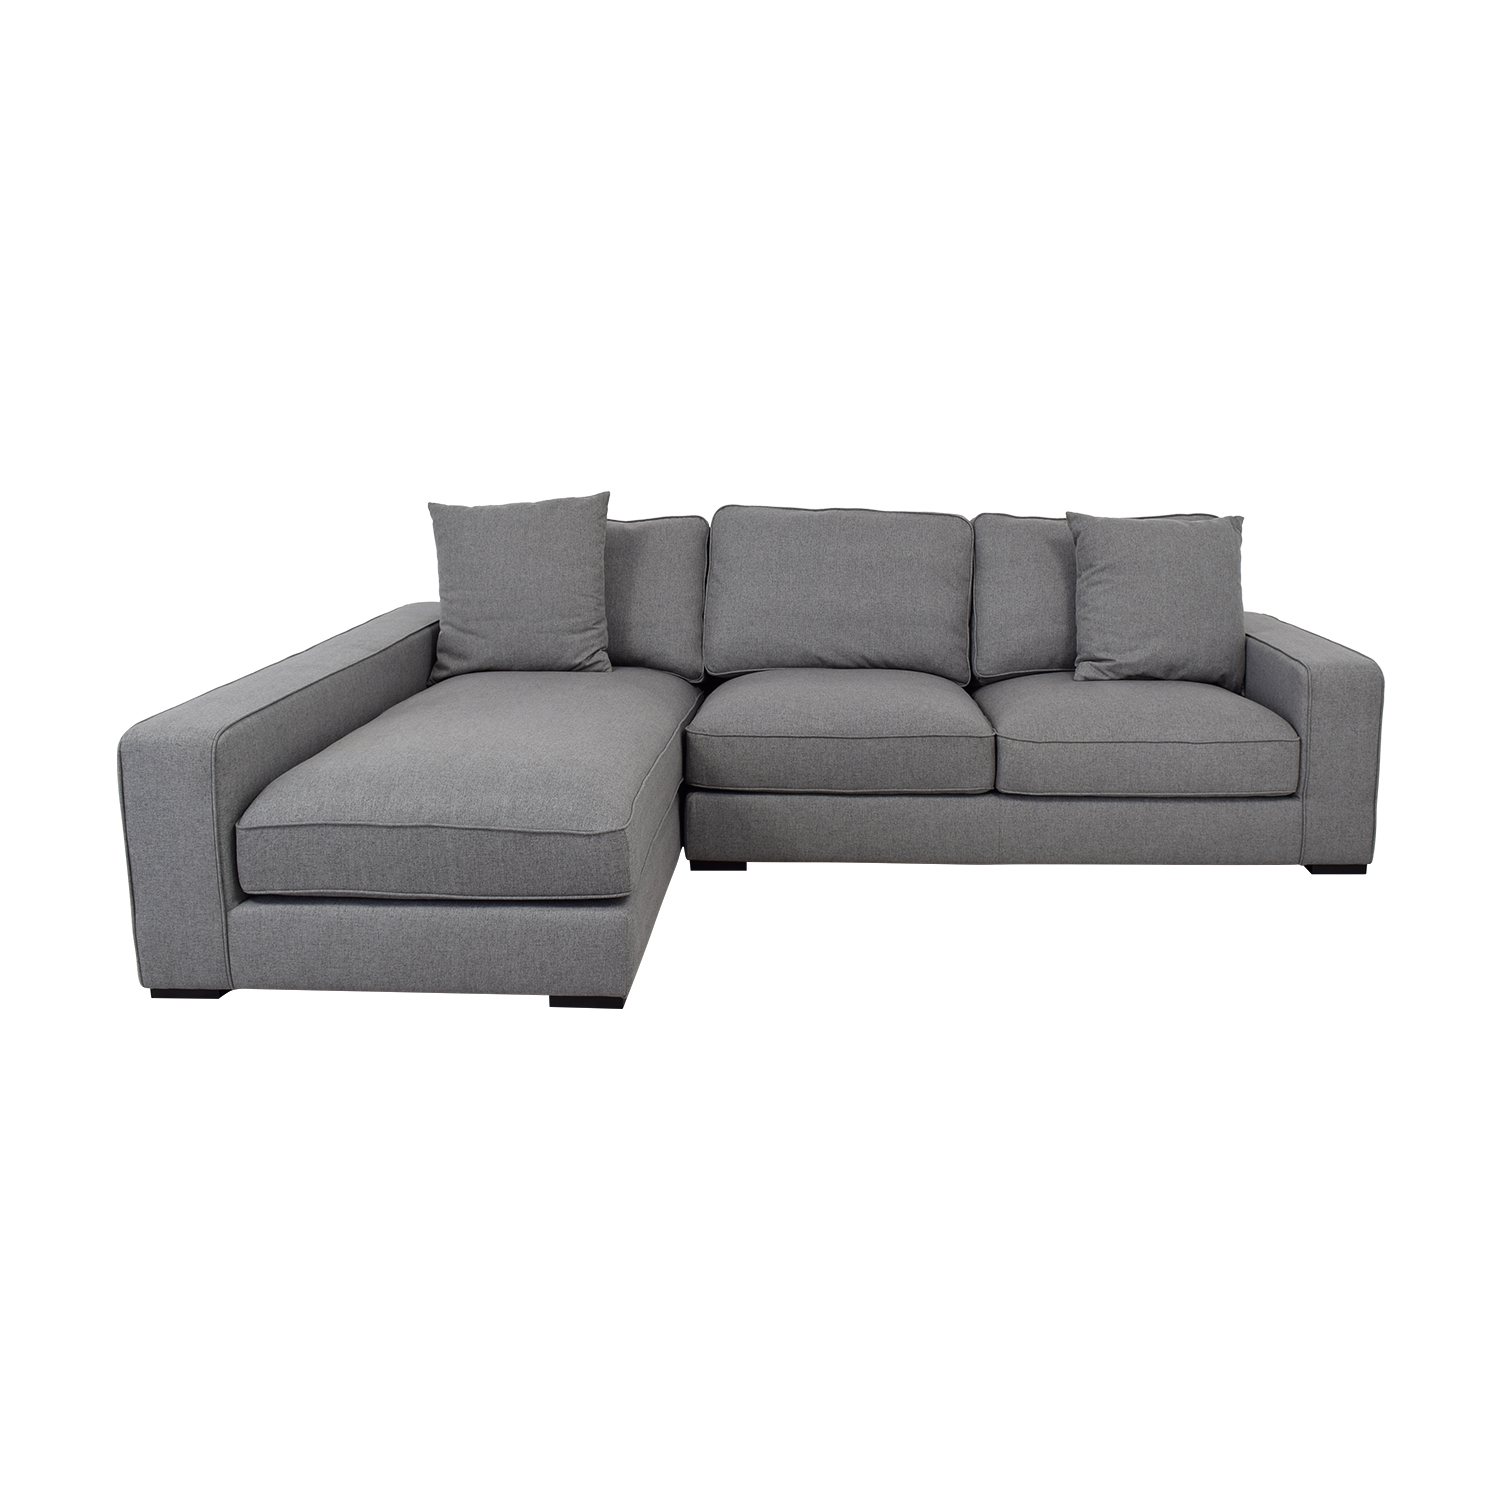 Ainsley Gray Left Chaise Sectional discount